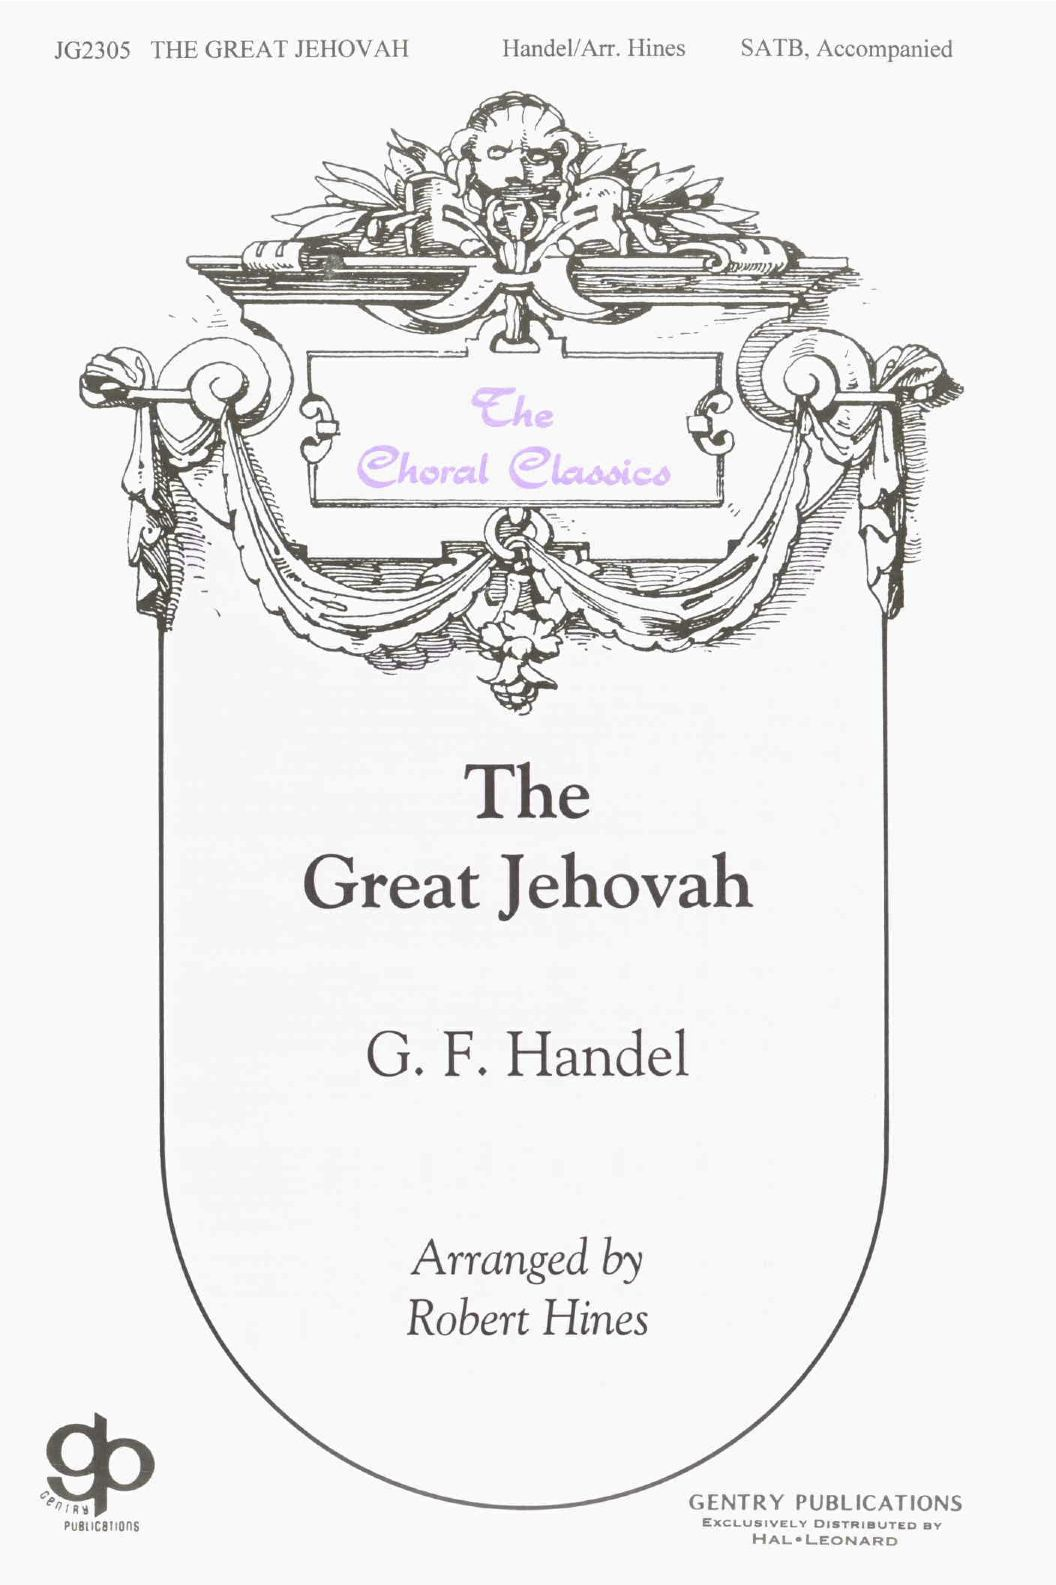 The Great Jehovah